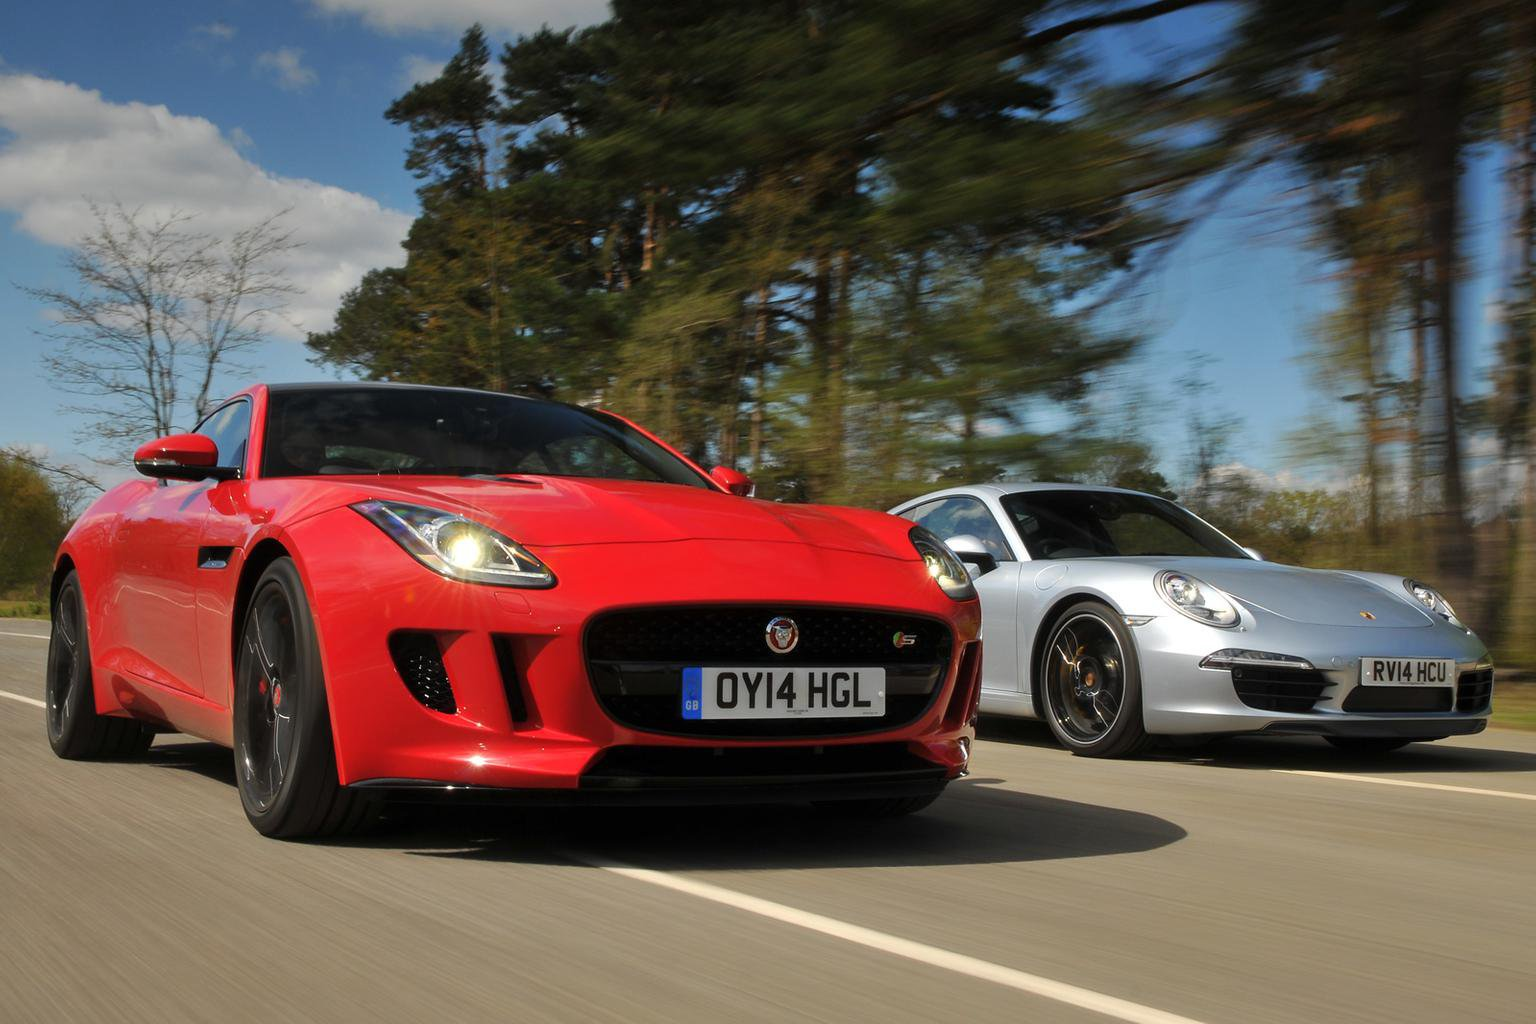 Jaguar F-type Coupe vs Porsche 911